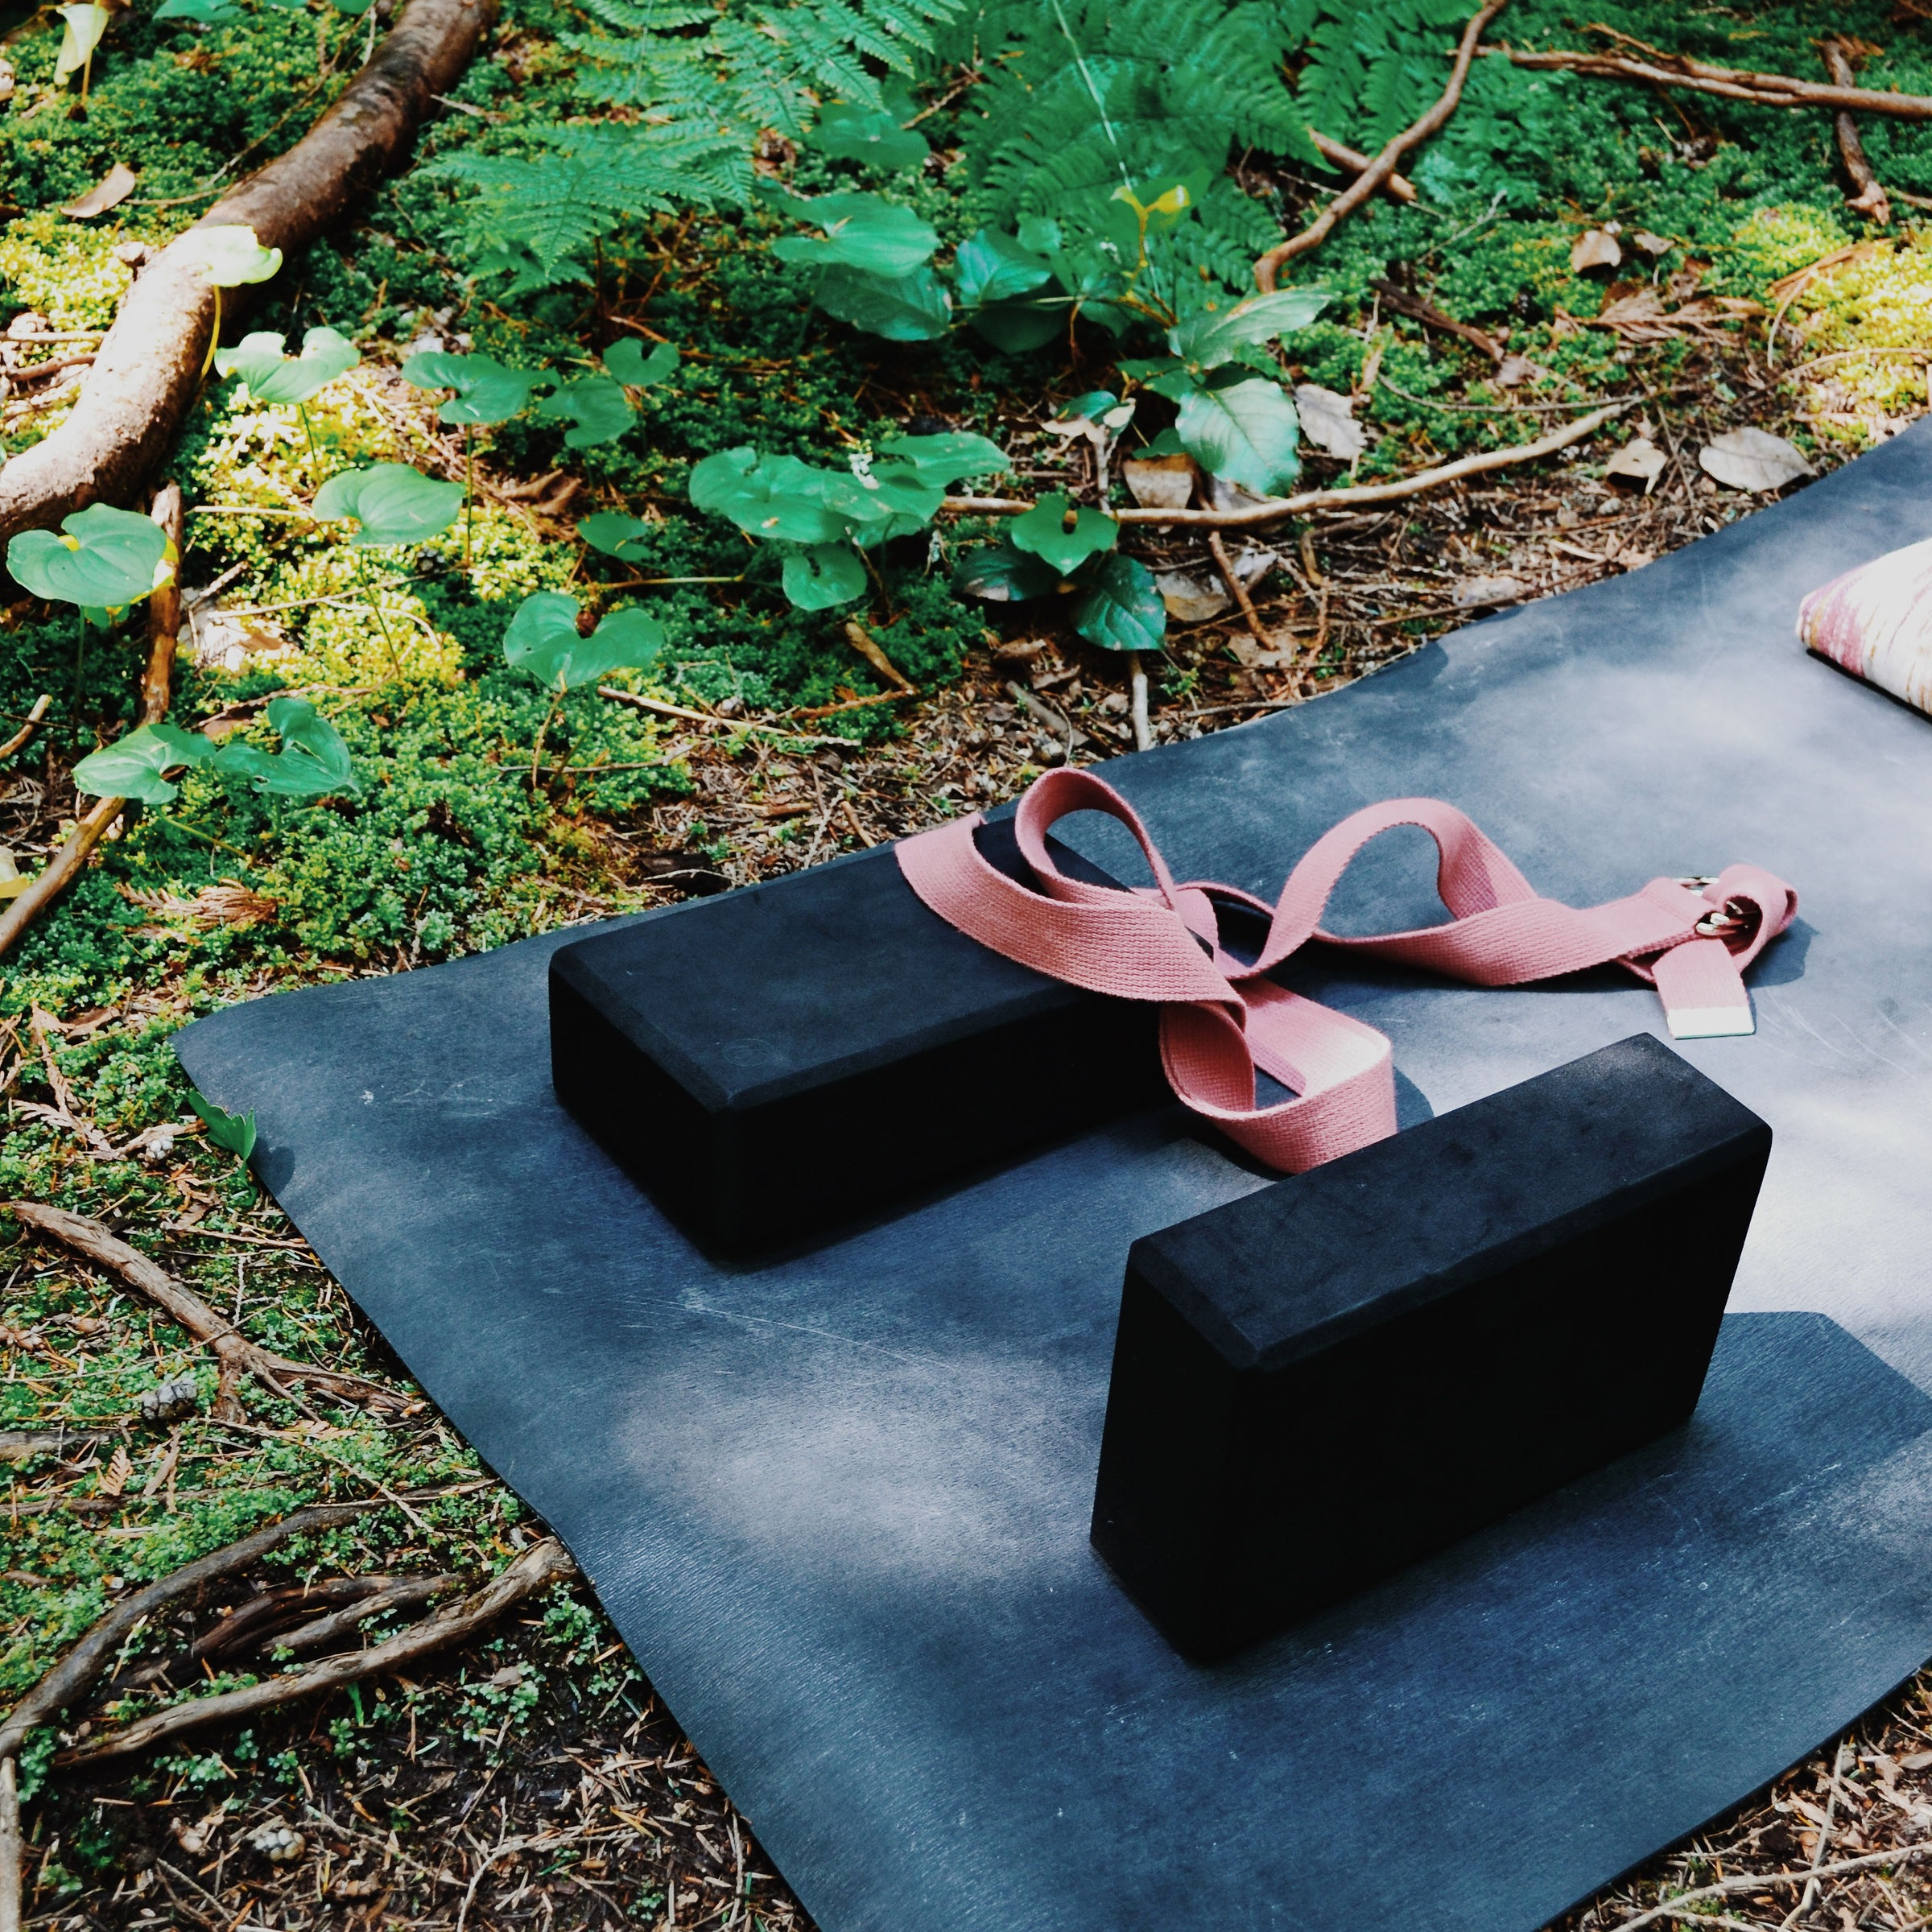 private yoga in vancouver - Your yoga should be as unique as you are. Through this 1:1 program, we will work together to build a sustainable and accessible yoga practice that supports your own unique body, mind, and life, leaving you feeling nourished, balanced, and connected.